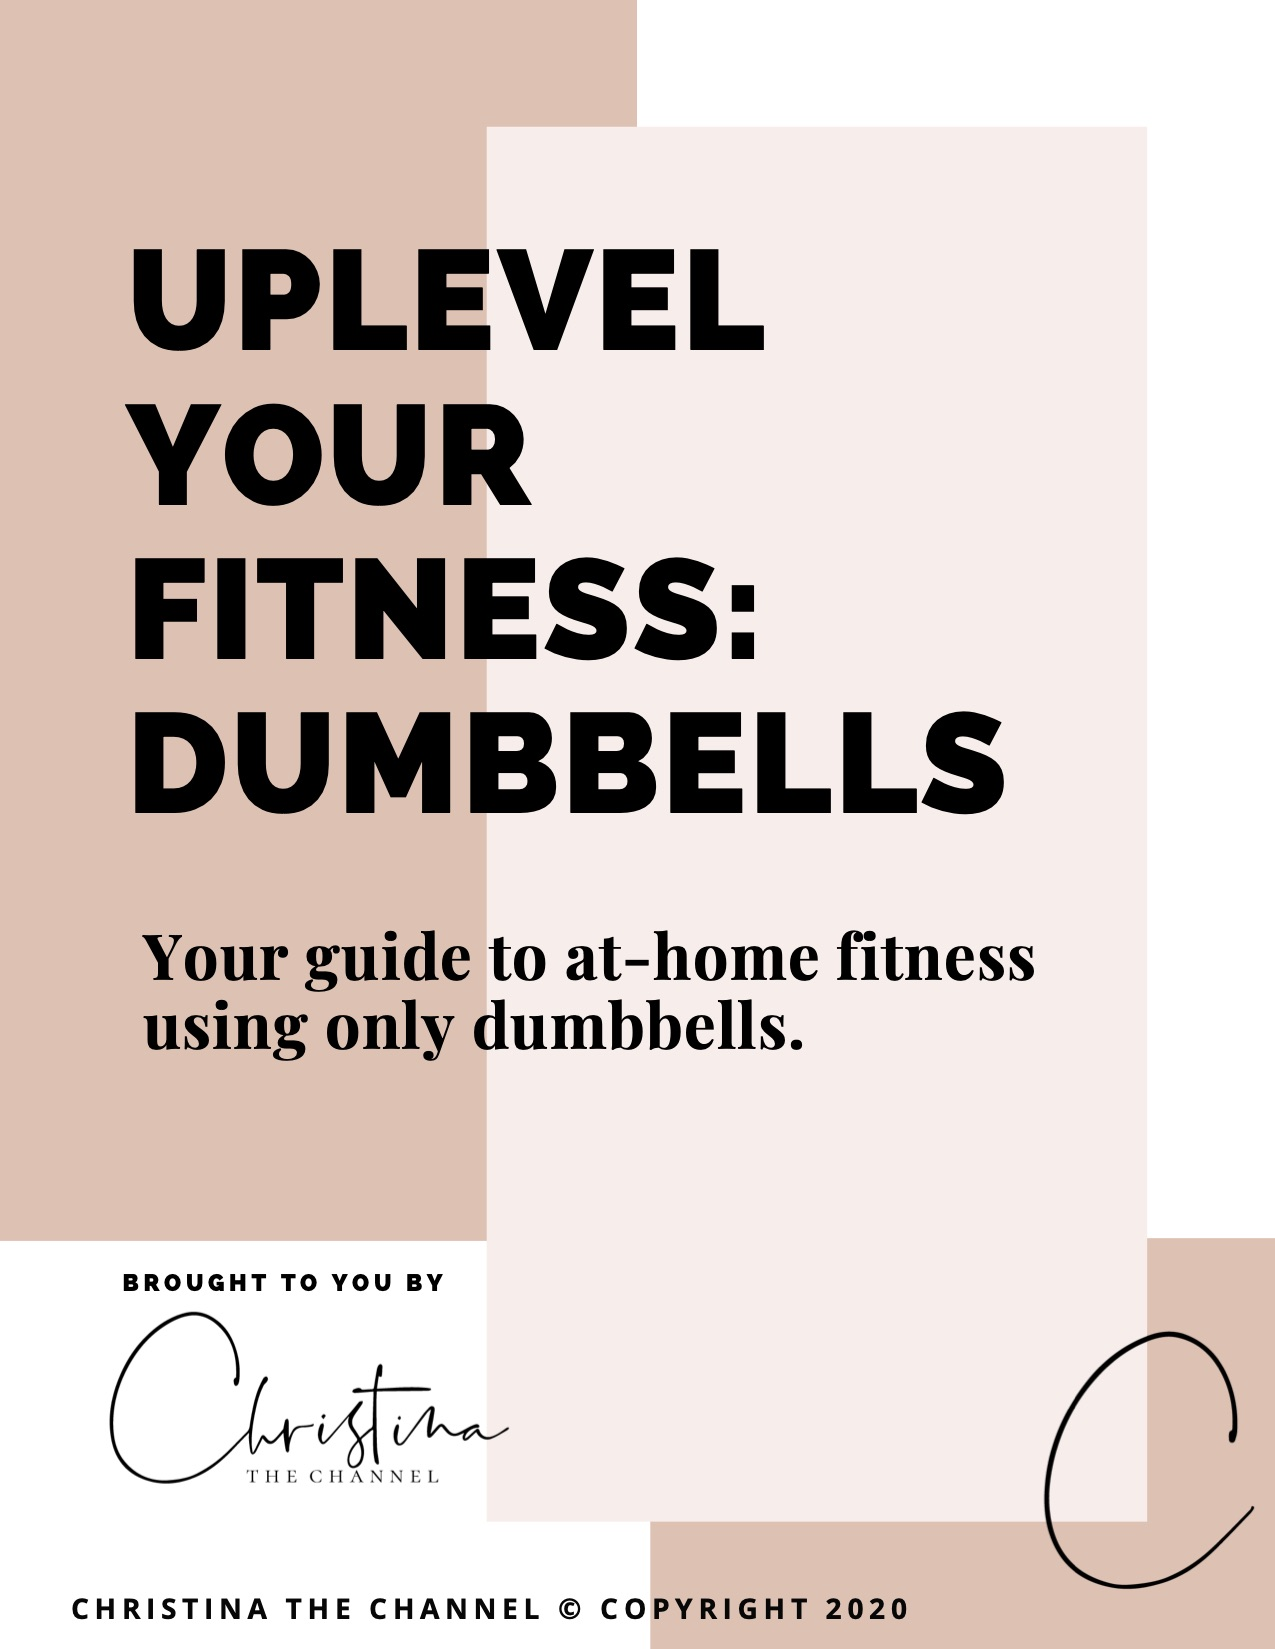 UPLEVEL Fitness - Dumbbells